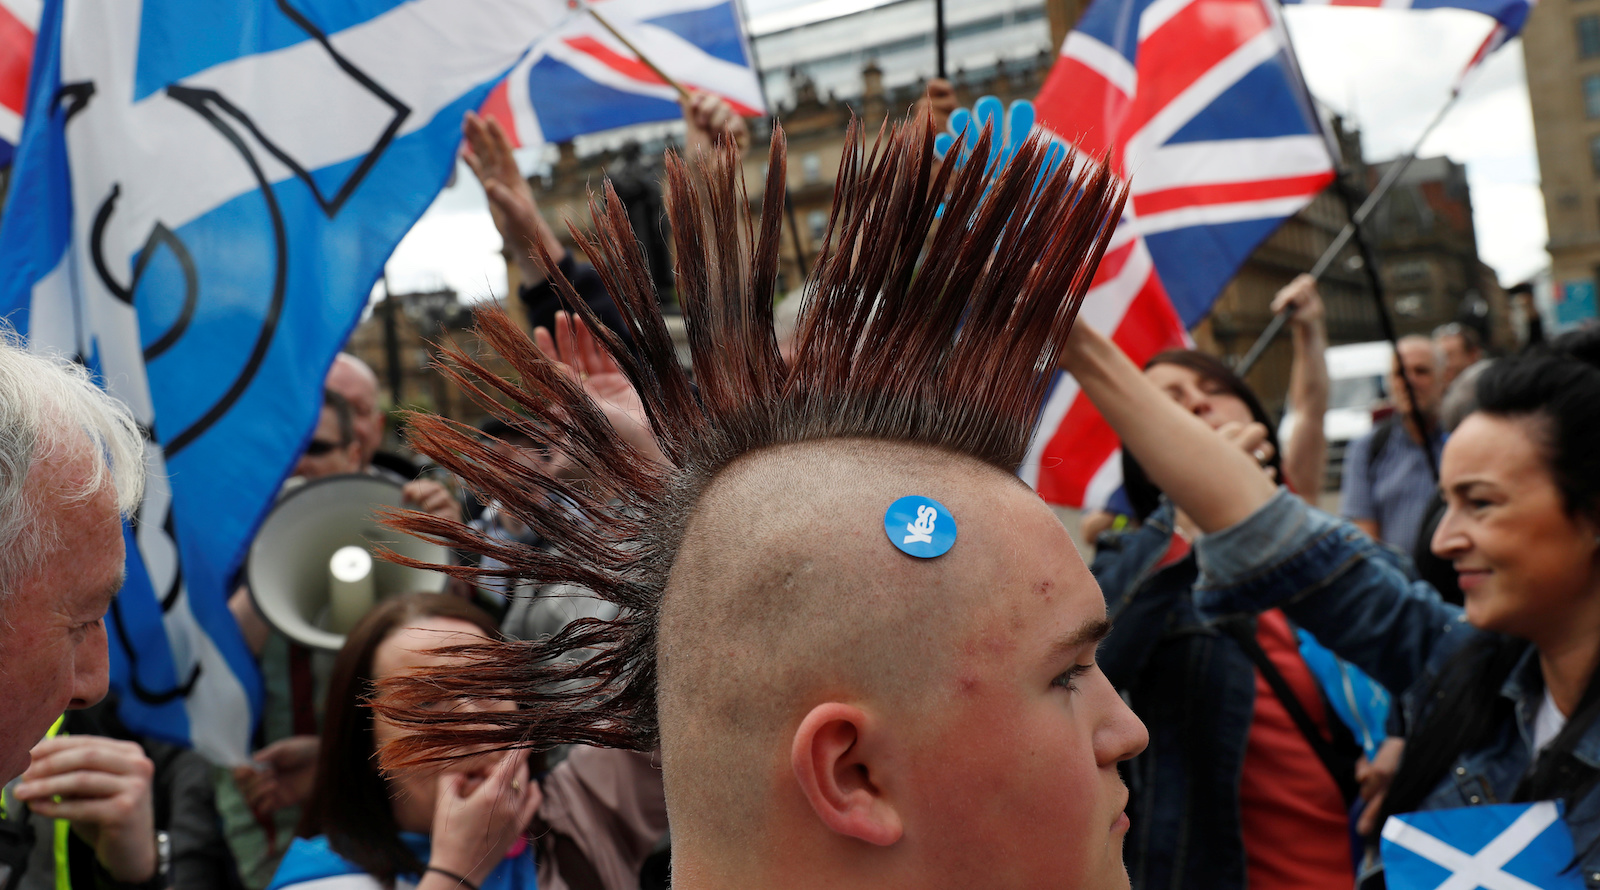 Demonstrators wave flags at a march in support of Scottish independence, in Glasgow, Scotland, Britain June 3, 2017. REUTERS/Russell Cheyne - RTX38TK0